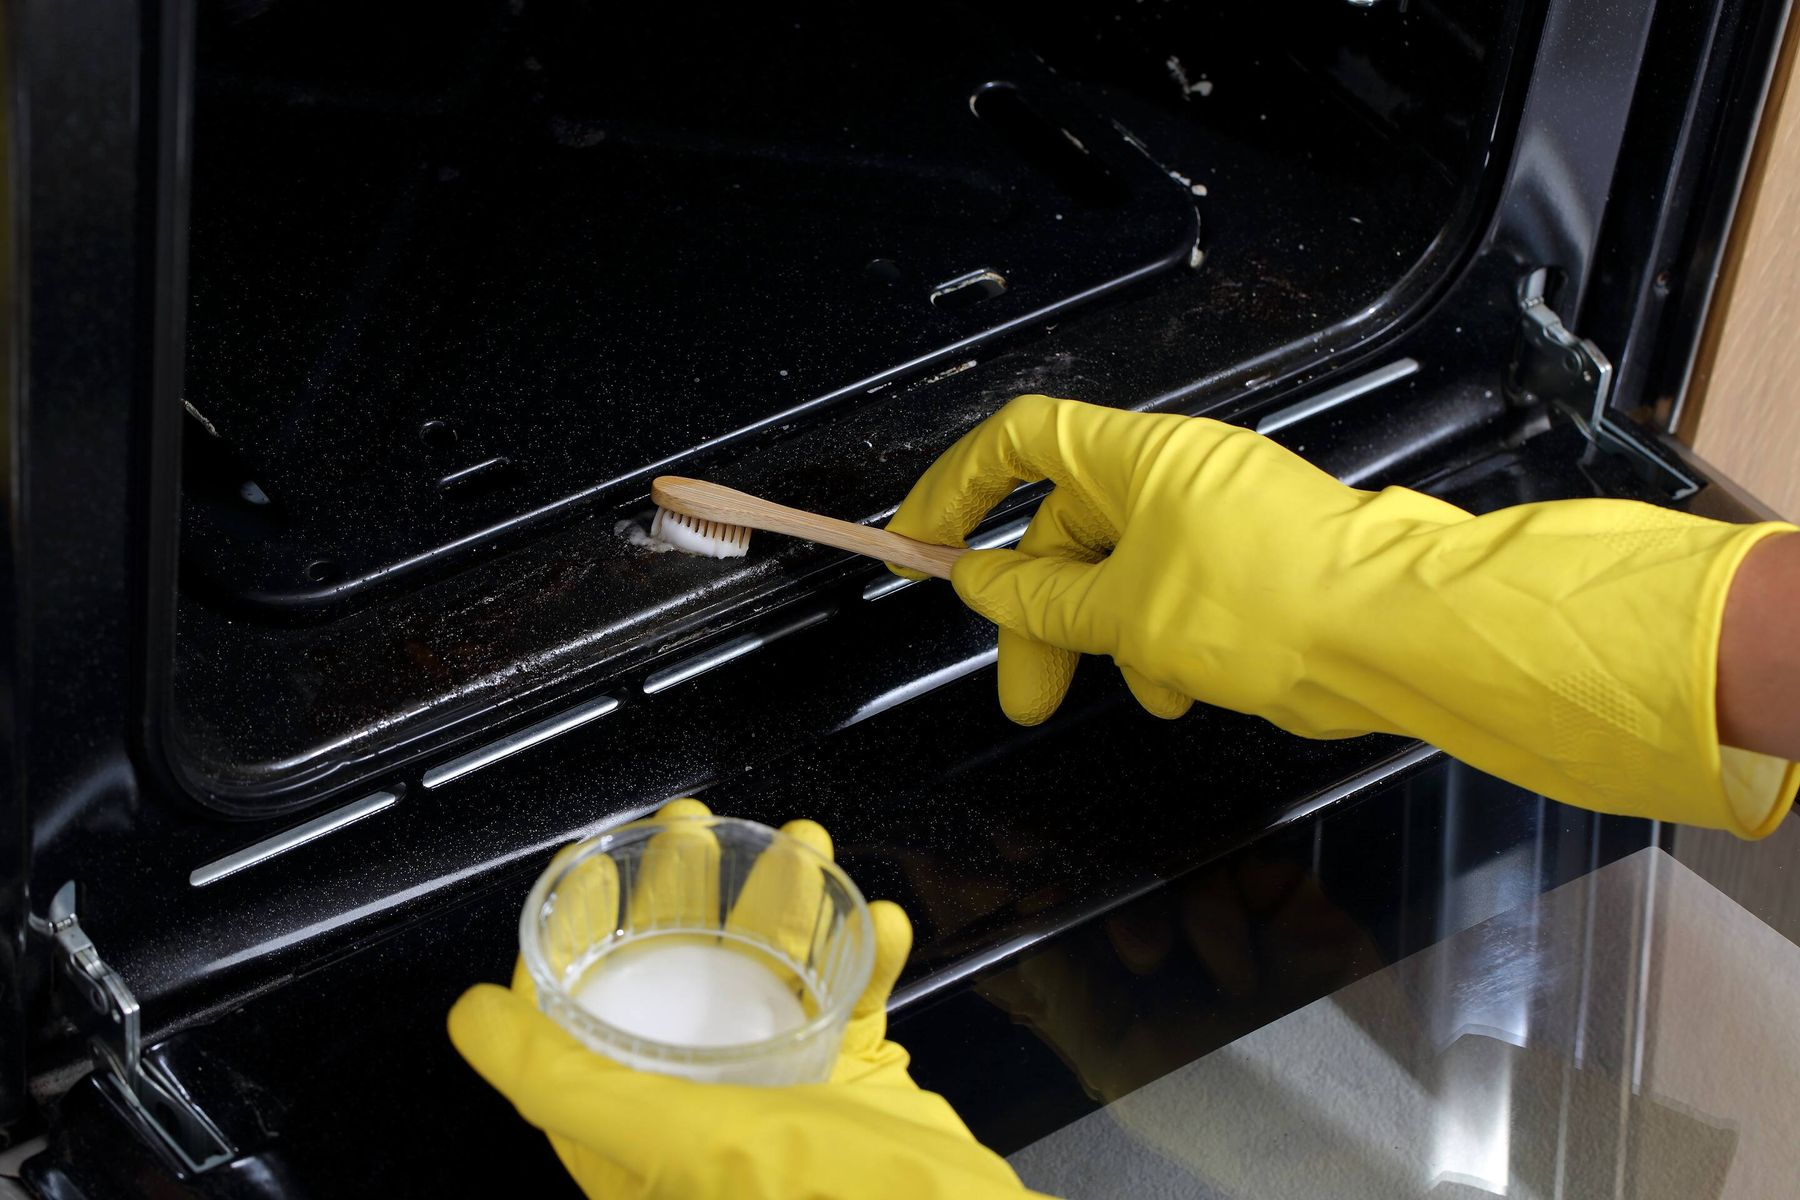 hands brushing mixture to oven interior